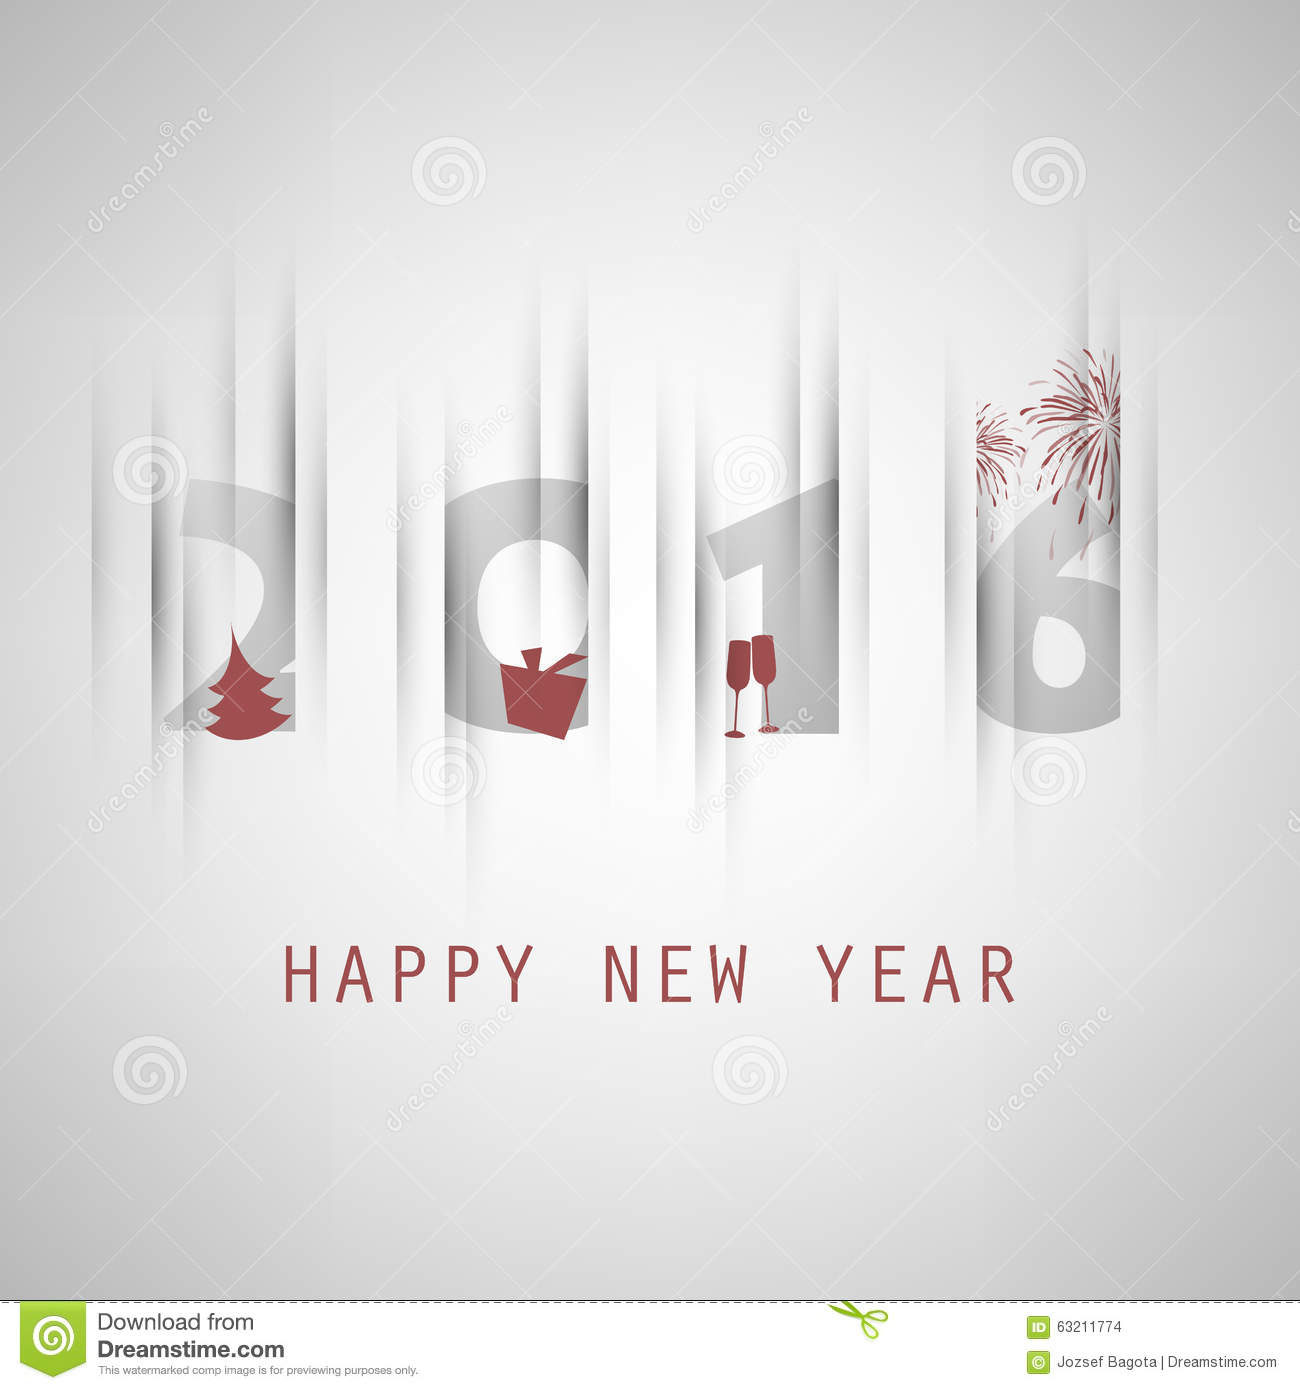 simple grey new year card cover or background design template